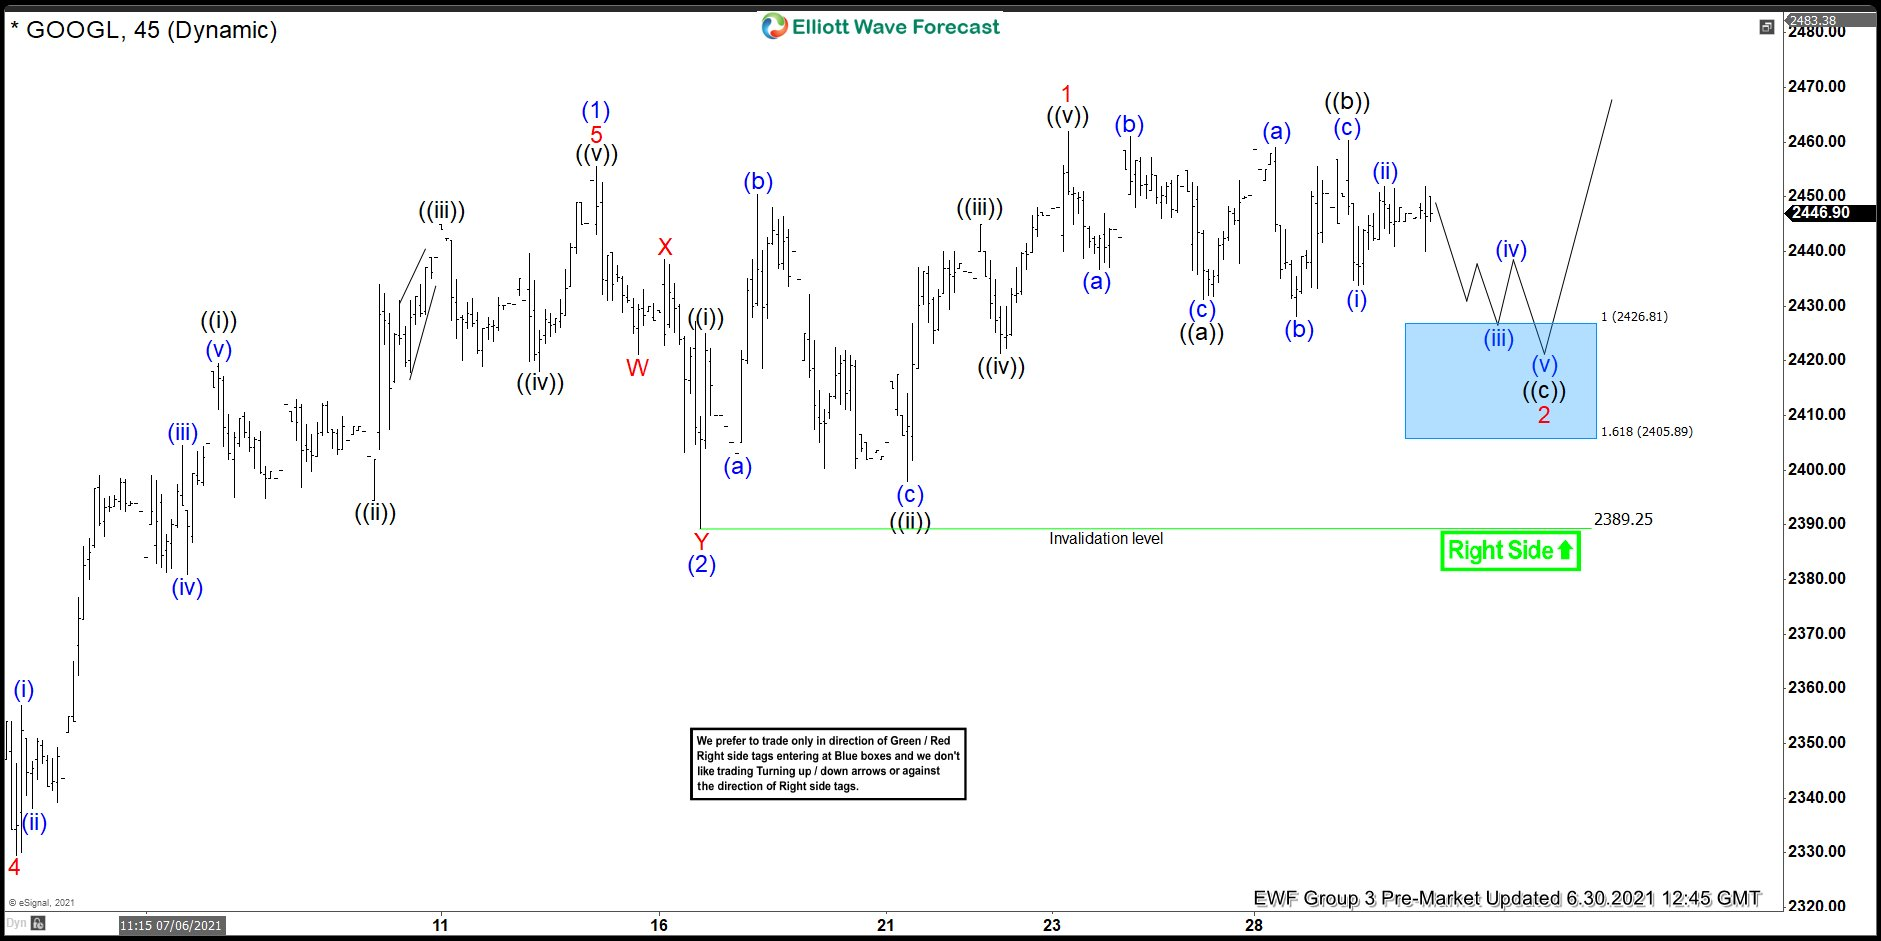 Google Elliott Wave View: Made New Highs From Blue Box Area